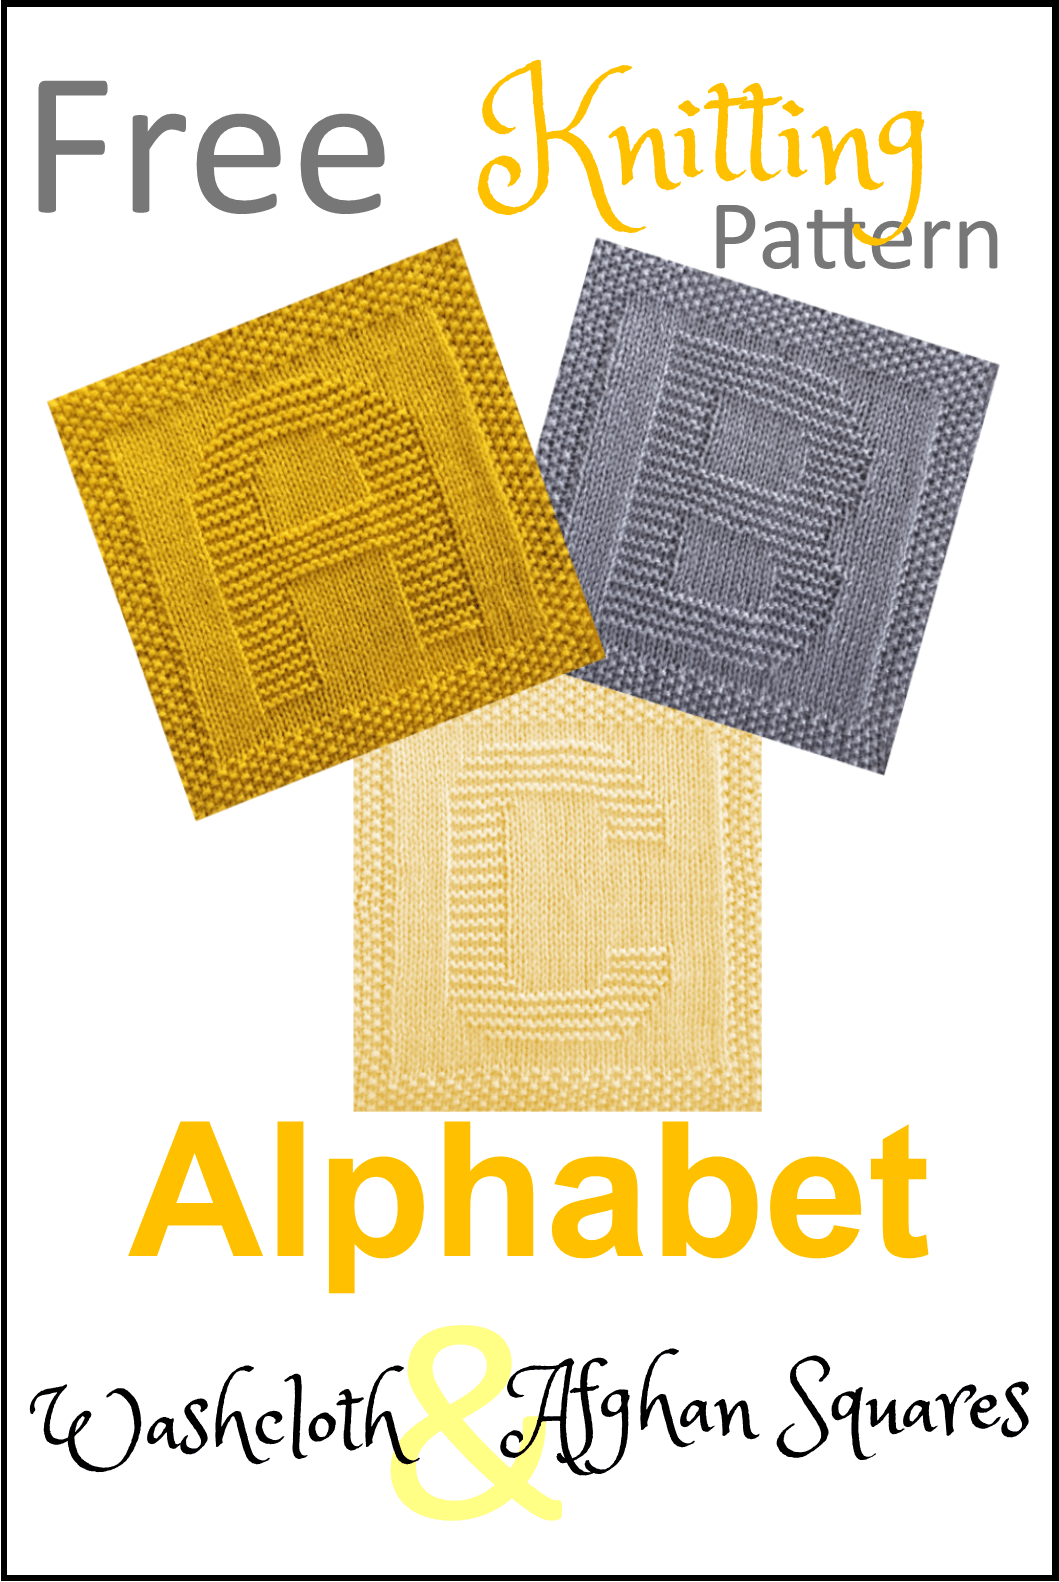 Photo of Free Alphabet Washcloth and Afghan Squares Knitting Pattern